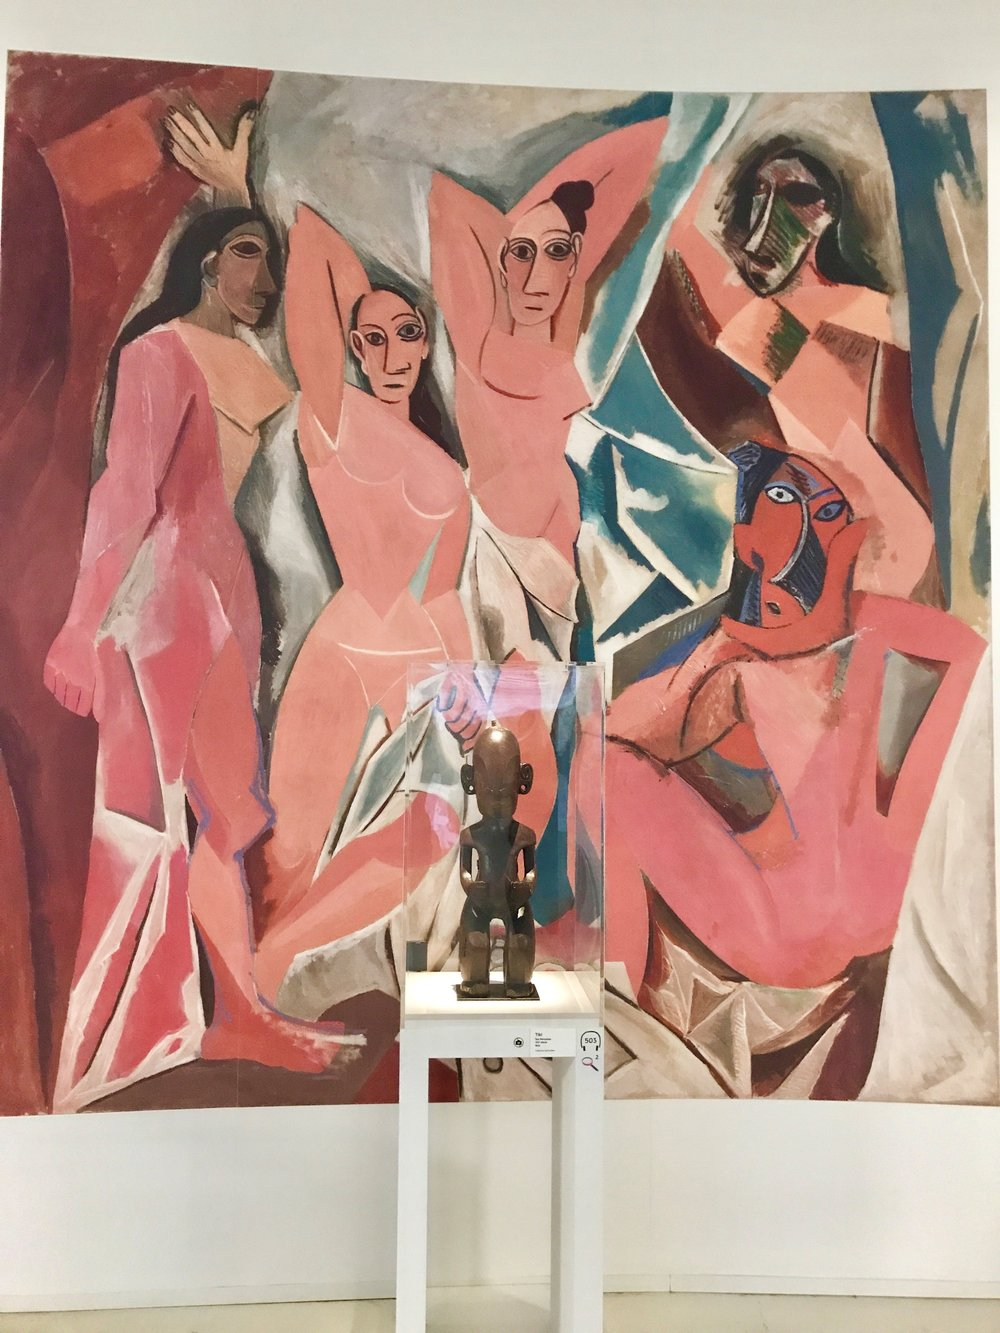 A reproduction of  Les Demoiselles d'Avignon  with the original Tiki sculpture that Picasso first bought for himself in 1910.